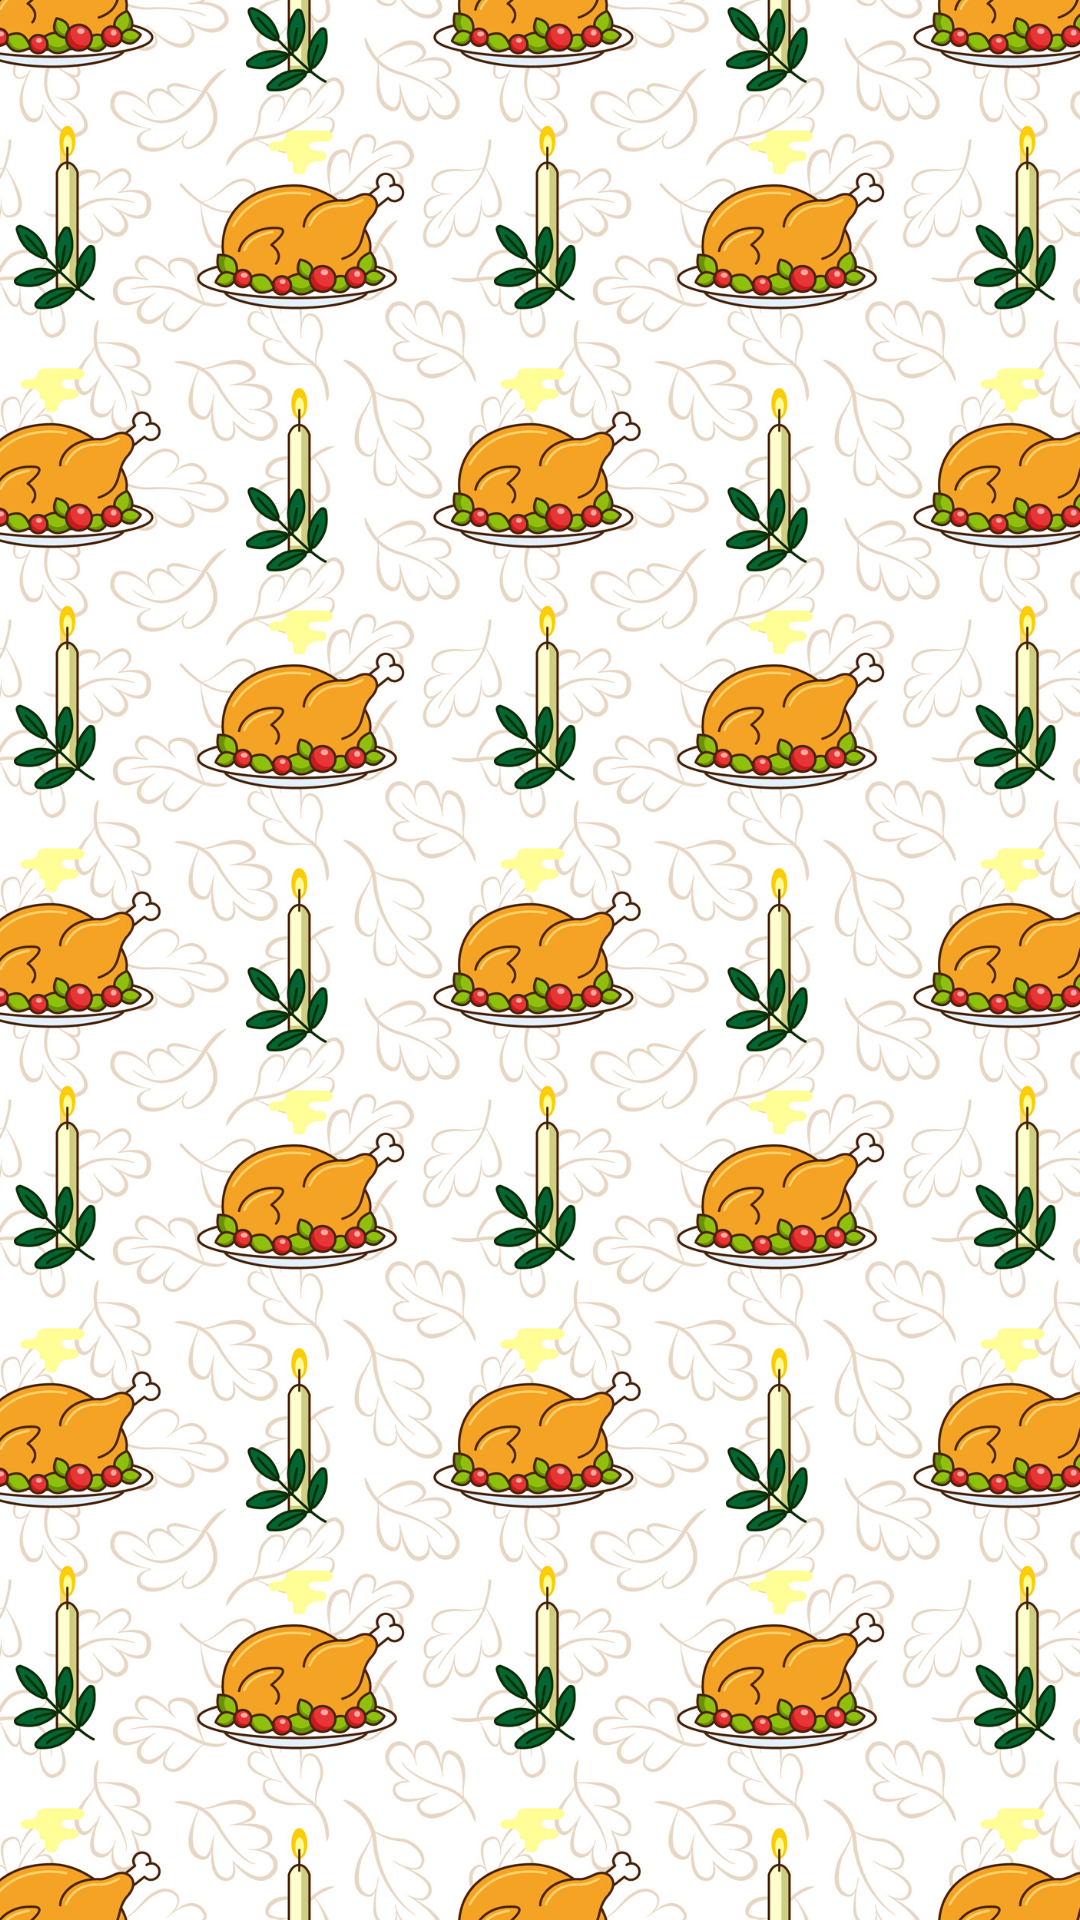 Thanksgiving seamless pattern with roasted turkey for greeting card, gift box, wallpaper, Fabric, web design, on floral background. - Vector